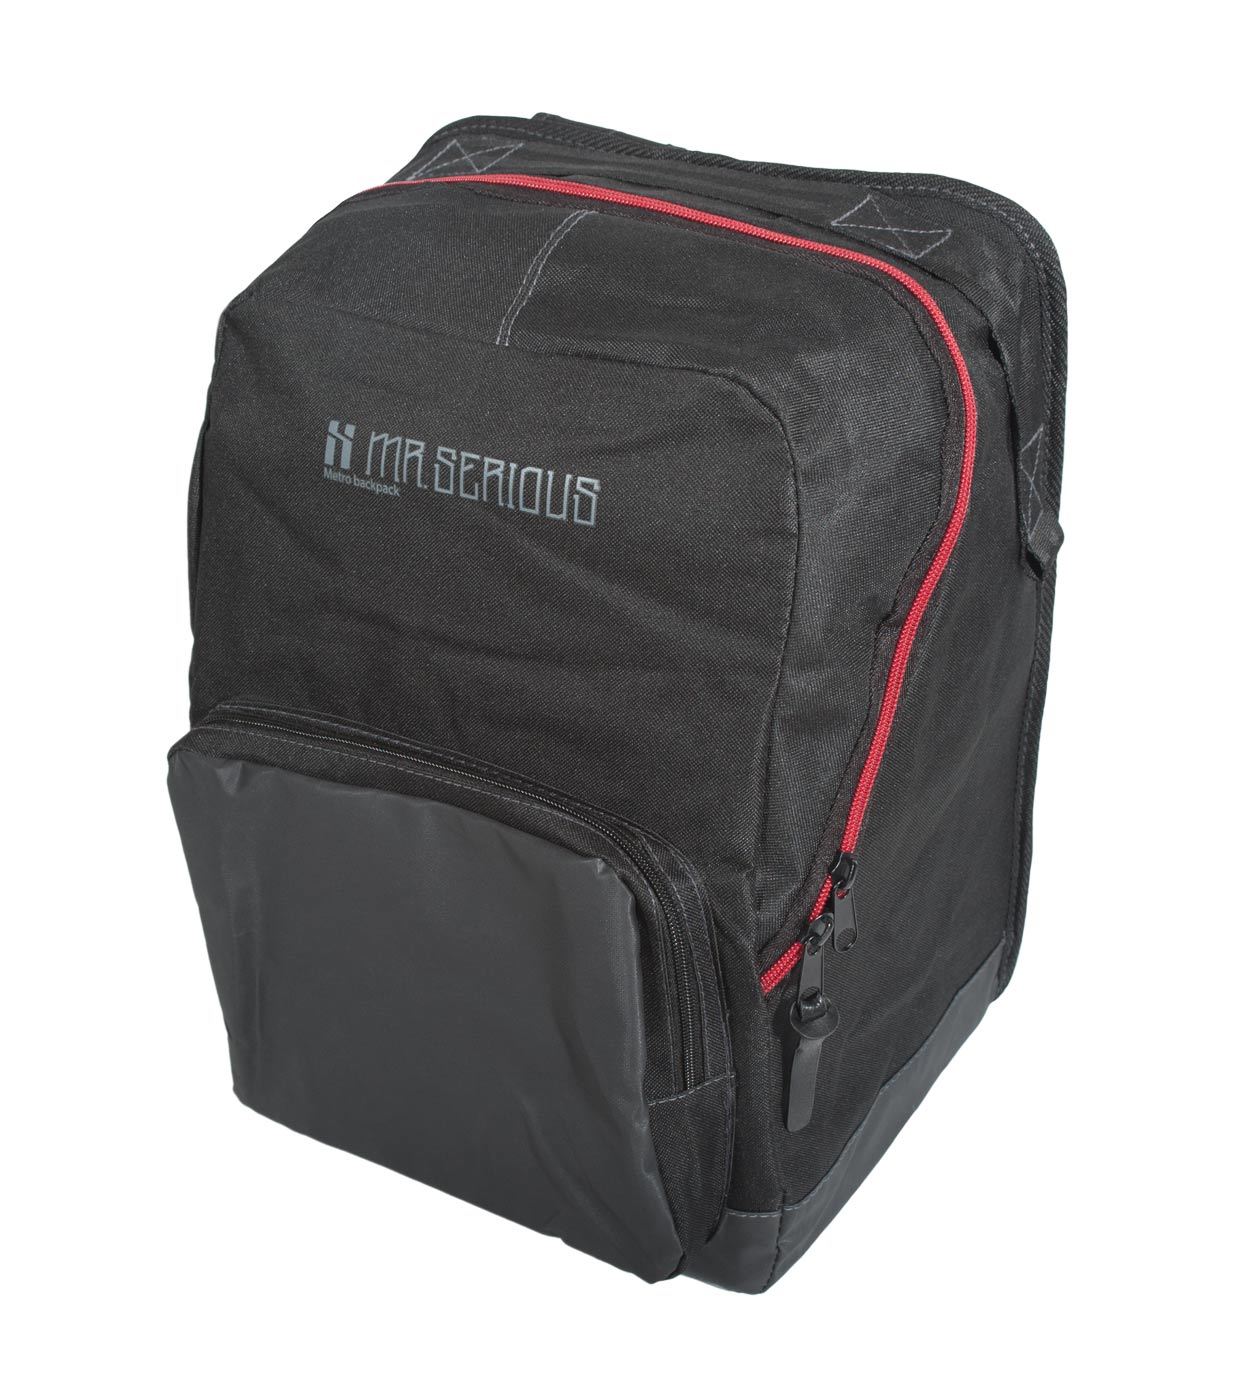 Backpack Black Mr Serious Metro Backpack Black Graffiti Bag Ready For Action